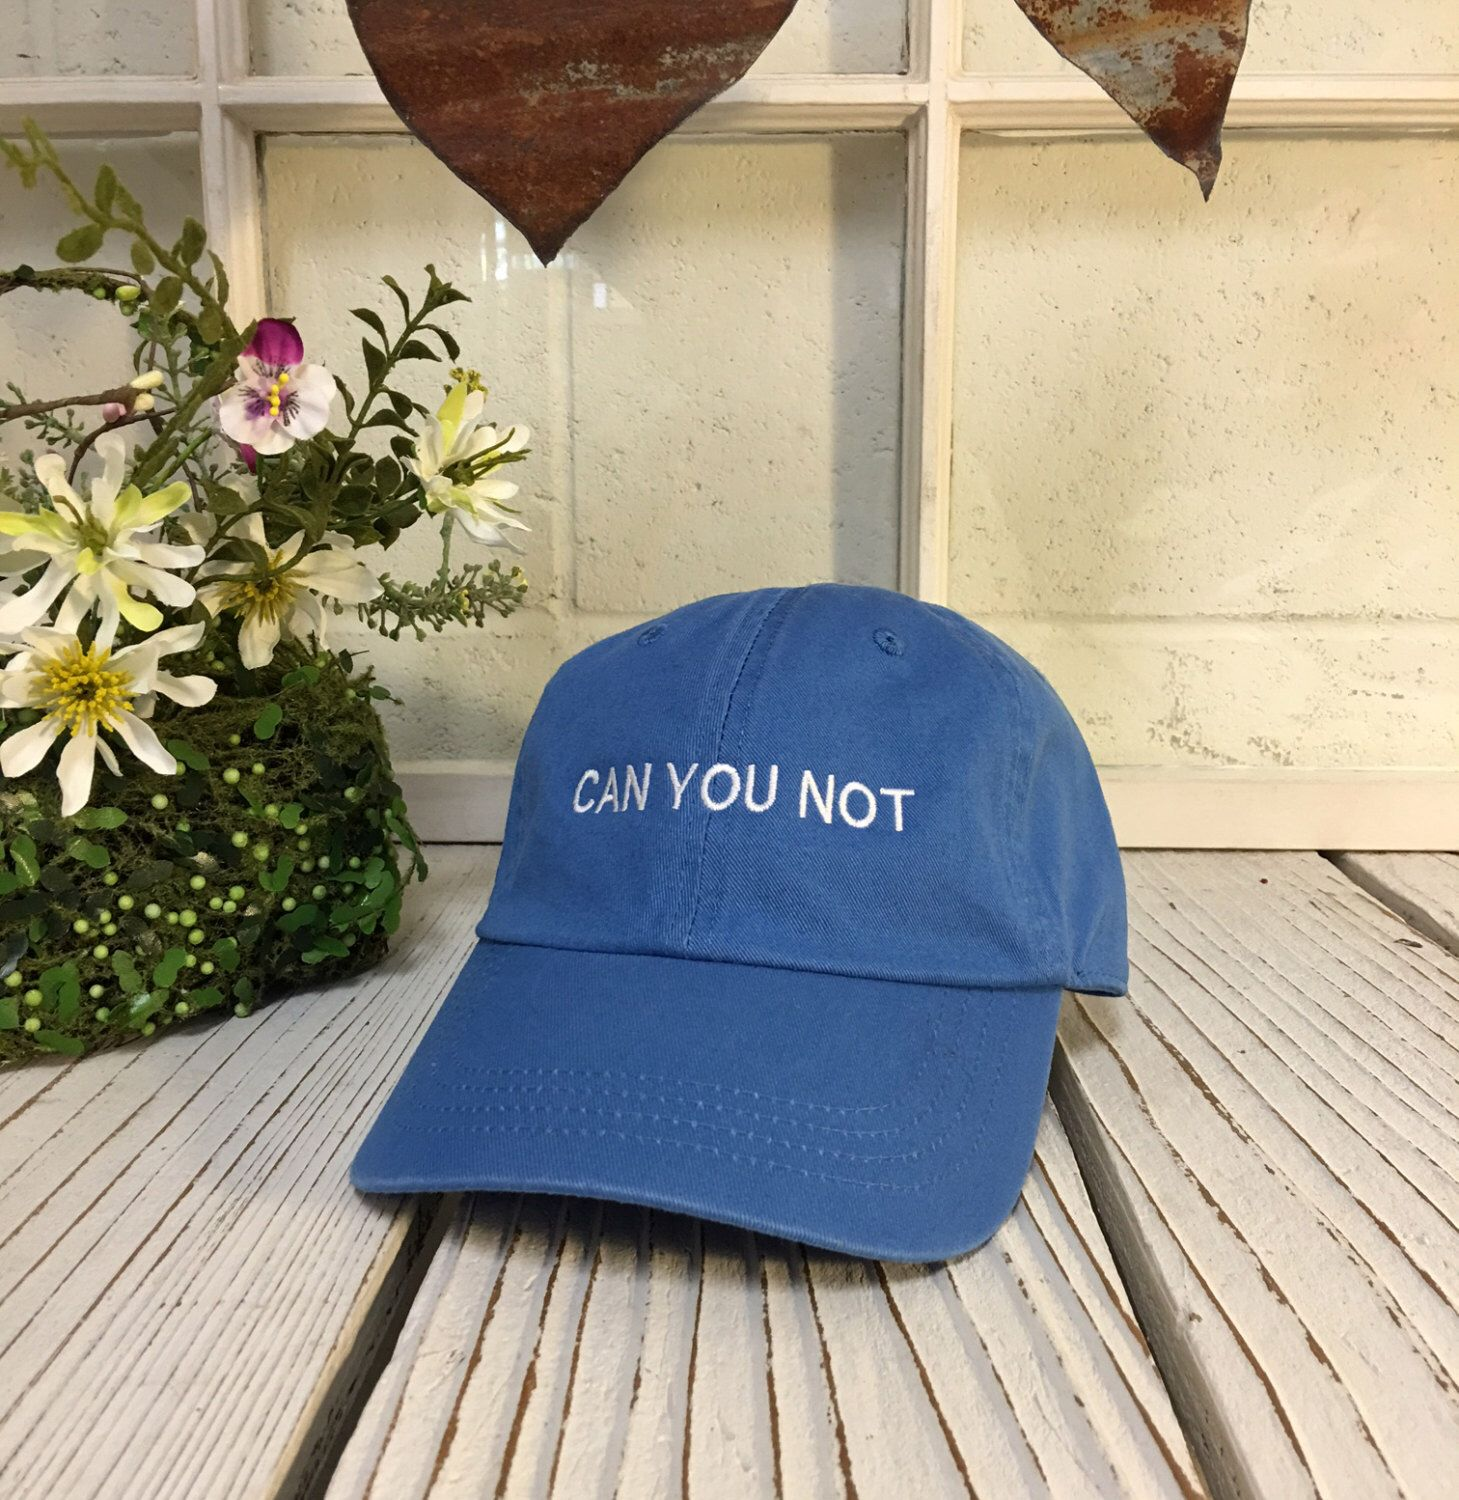 Vintage CAN YOU NOT Baseball Cap Low Profile Dad Hats Baseball Hat  Embroidery Sky Blue  b7727d096758